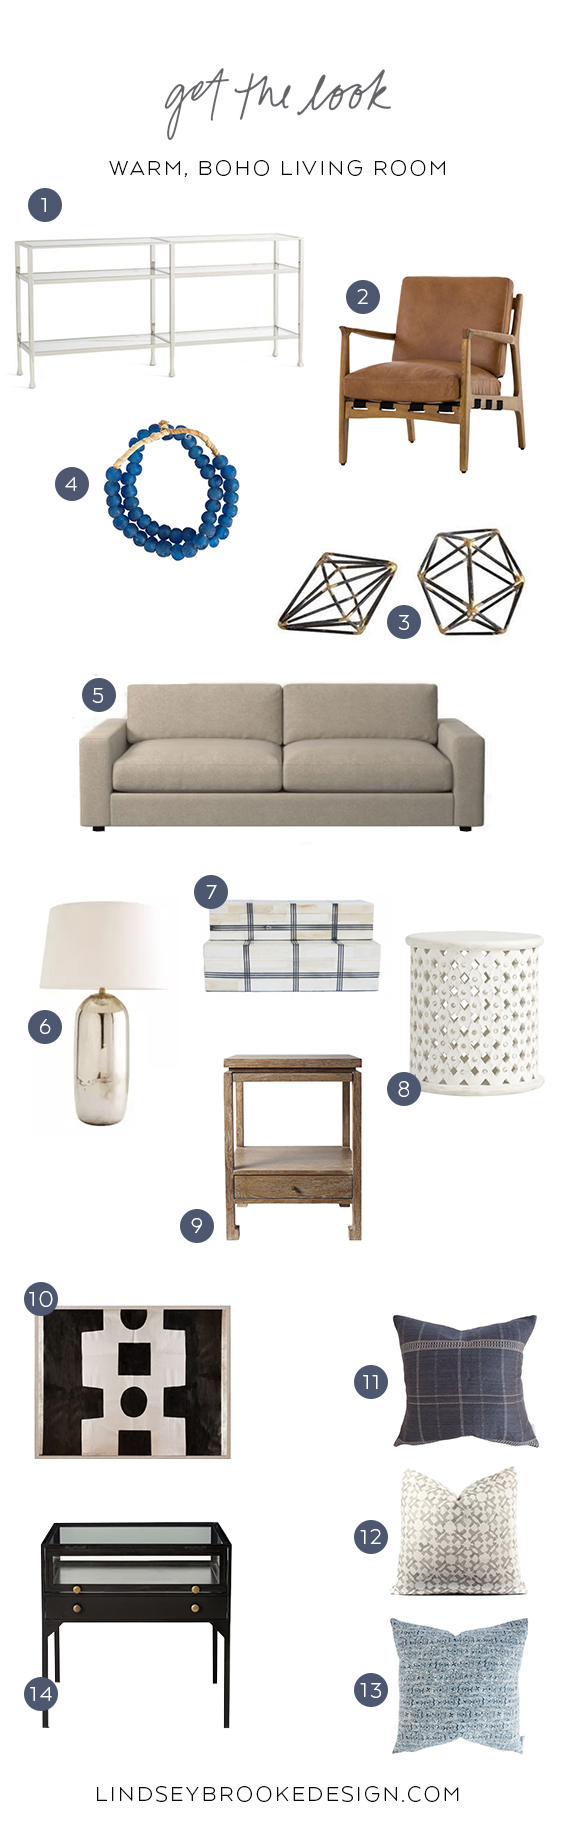 GET THE LOOK: Lake Sherwood Project - warm, boho living room.png